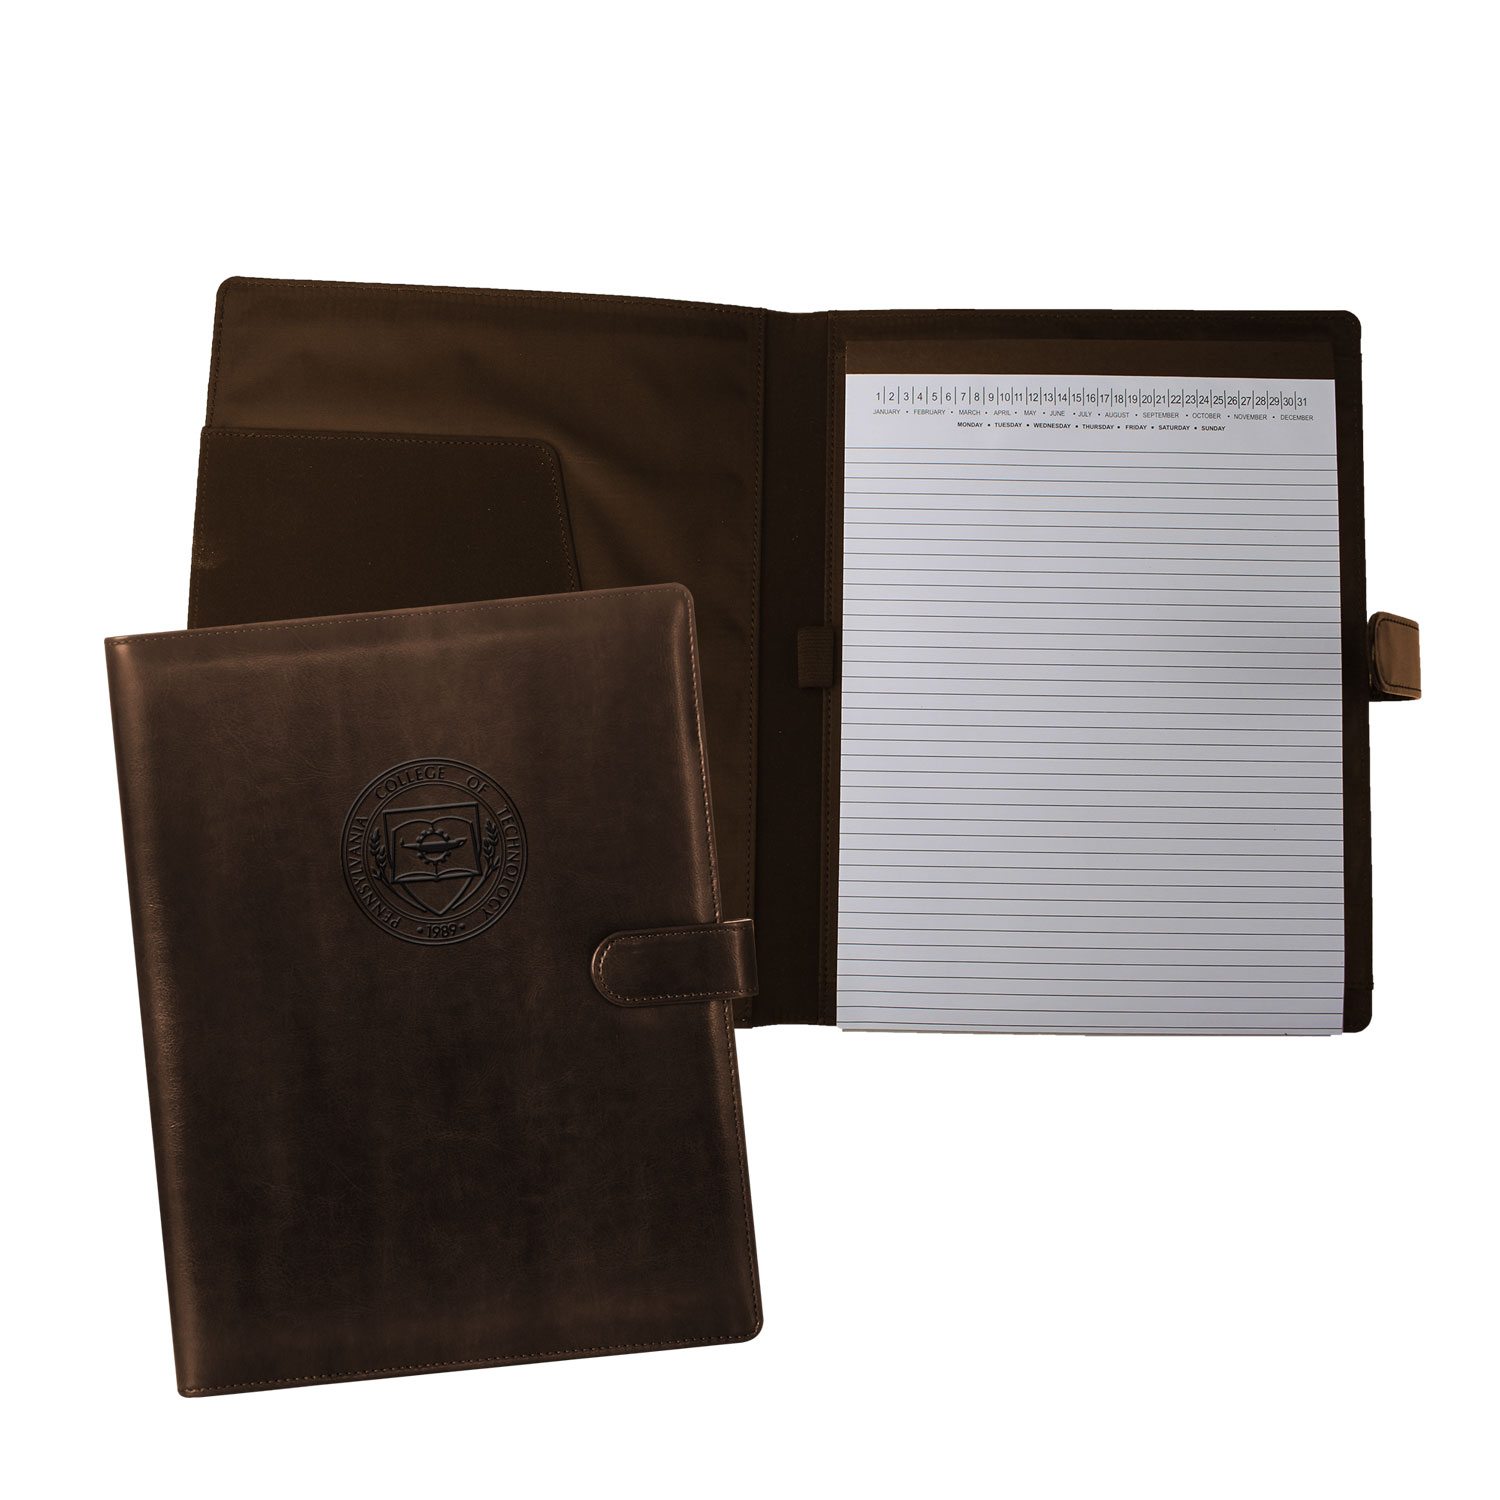 Cover Image For Brown Portfolio with Magnetic Clasp